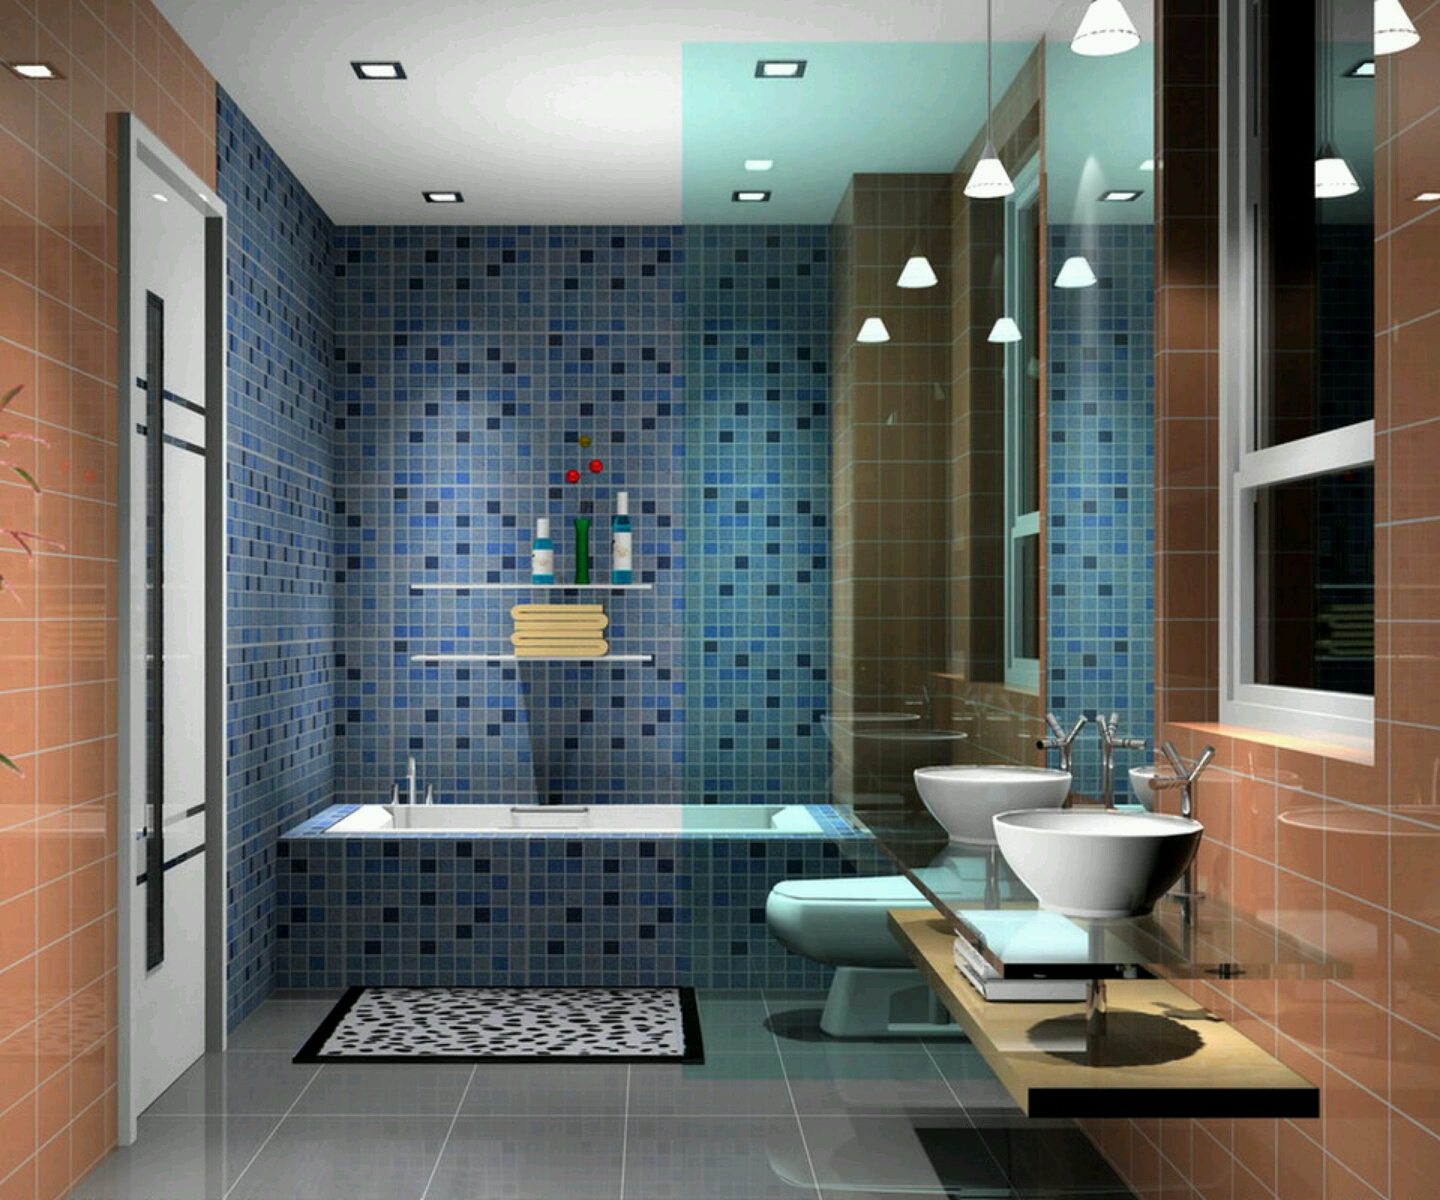 New home designs latest modern bathrooms best designs ideas for New home bathroom design